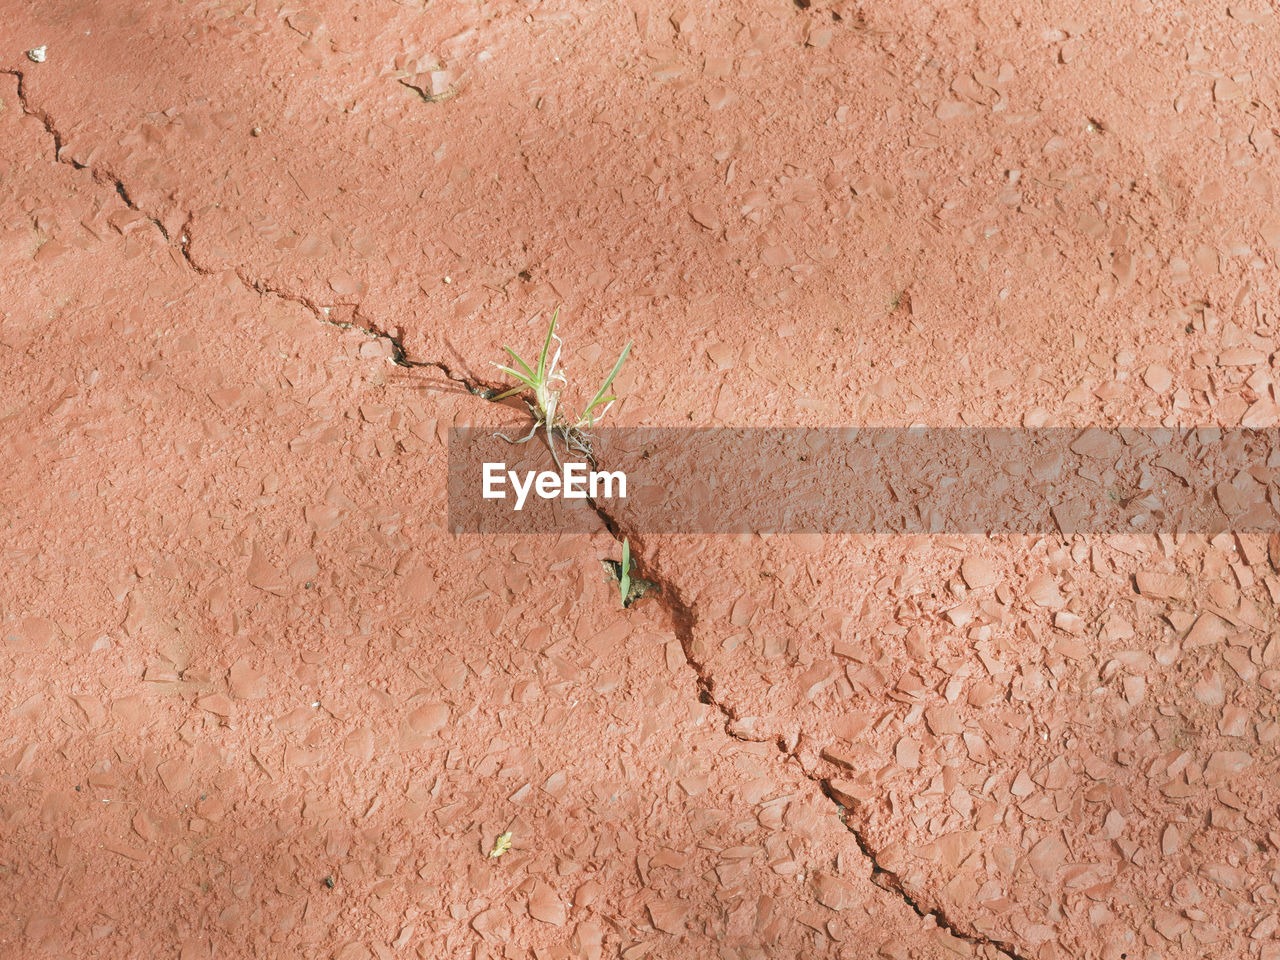 backgrounds, full frame, day, outdoors, no people, textured, arid climate, nature, close-up